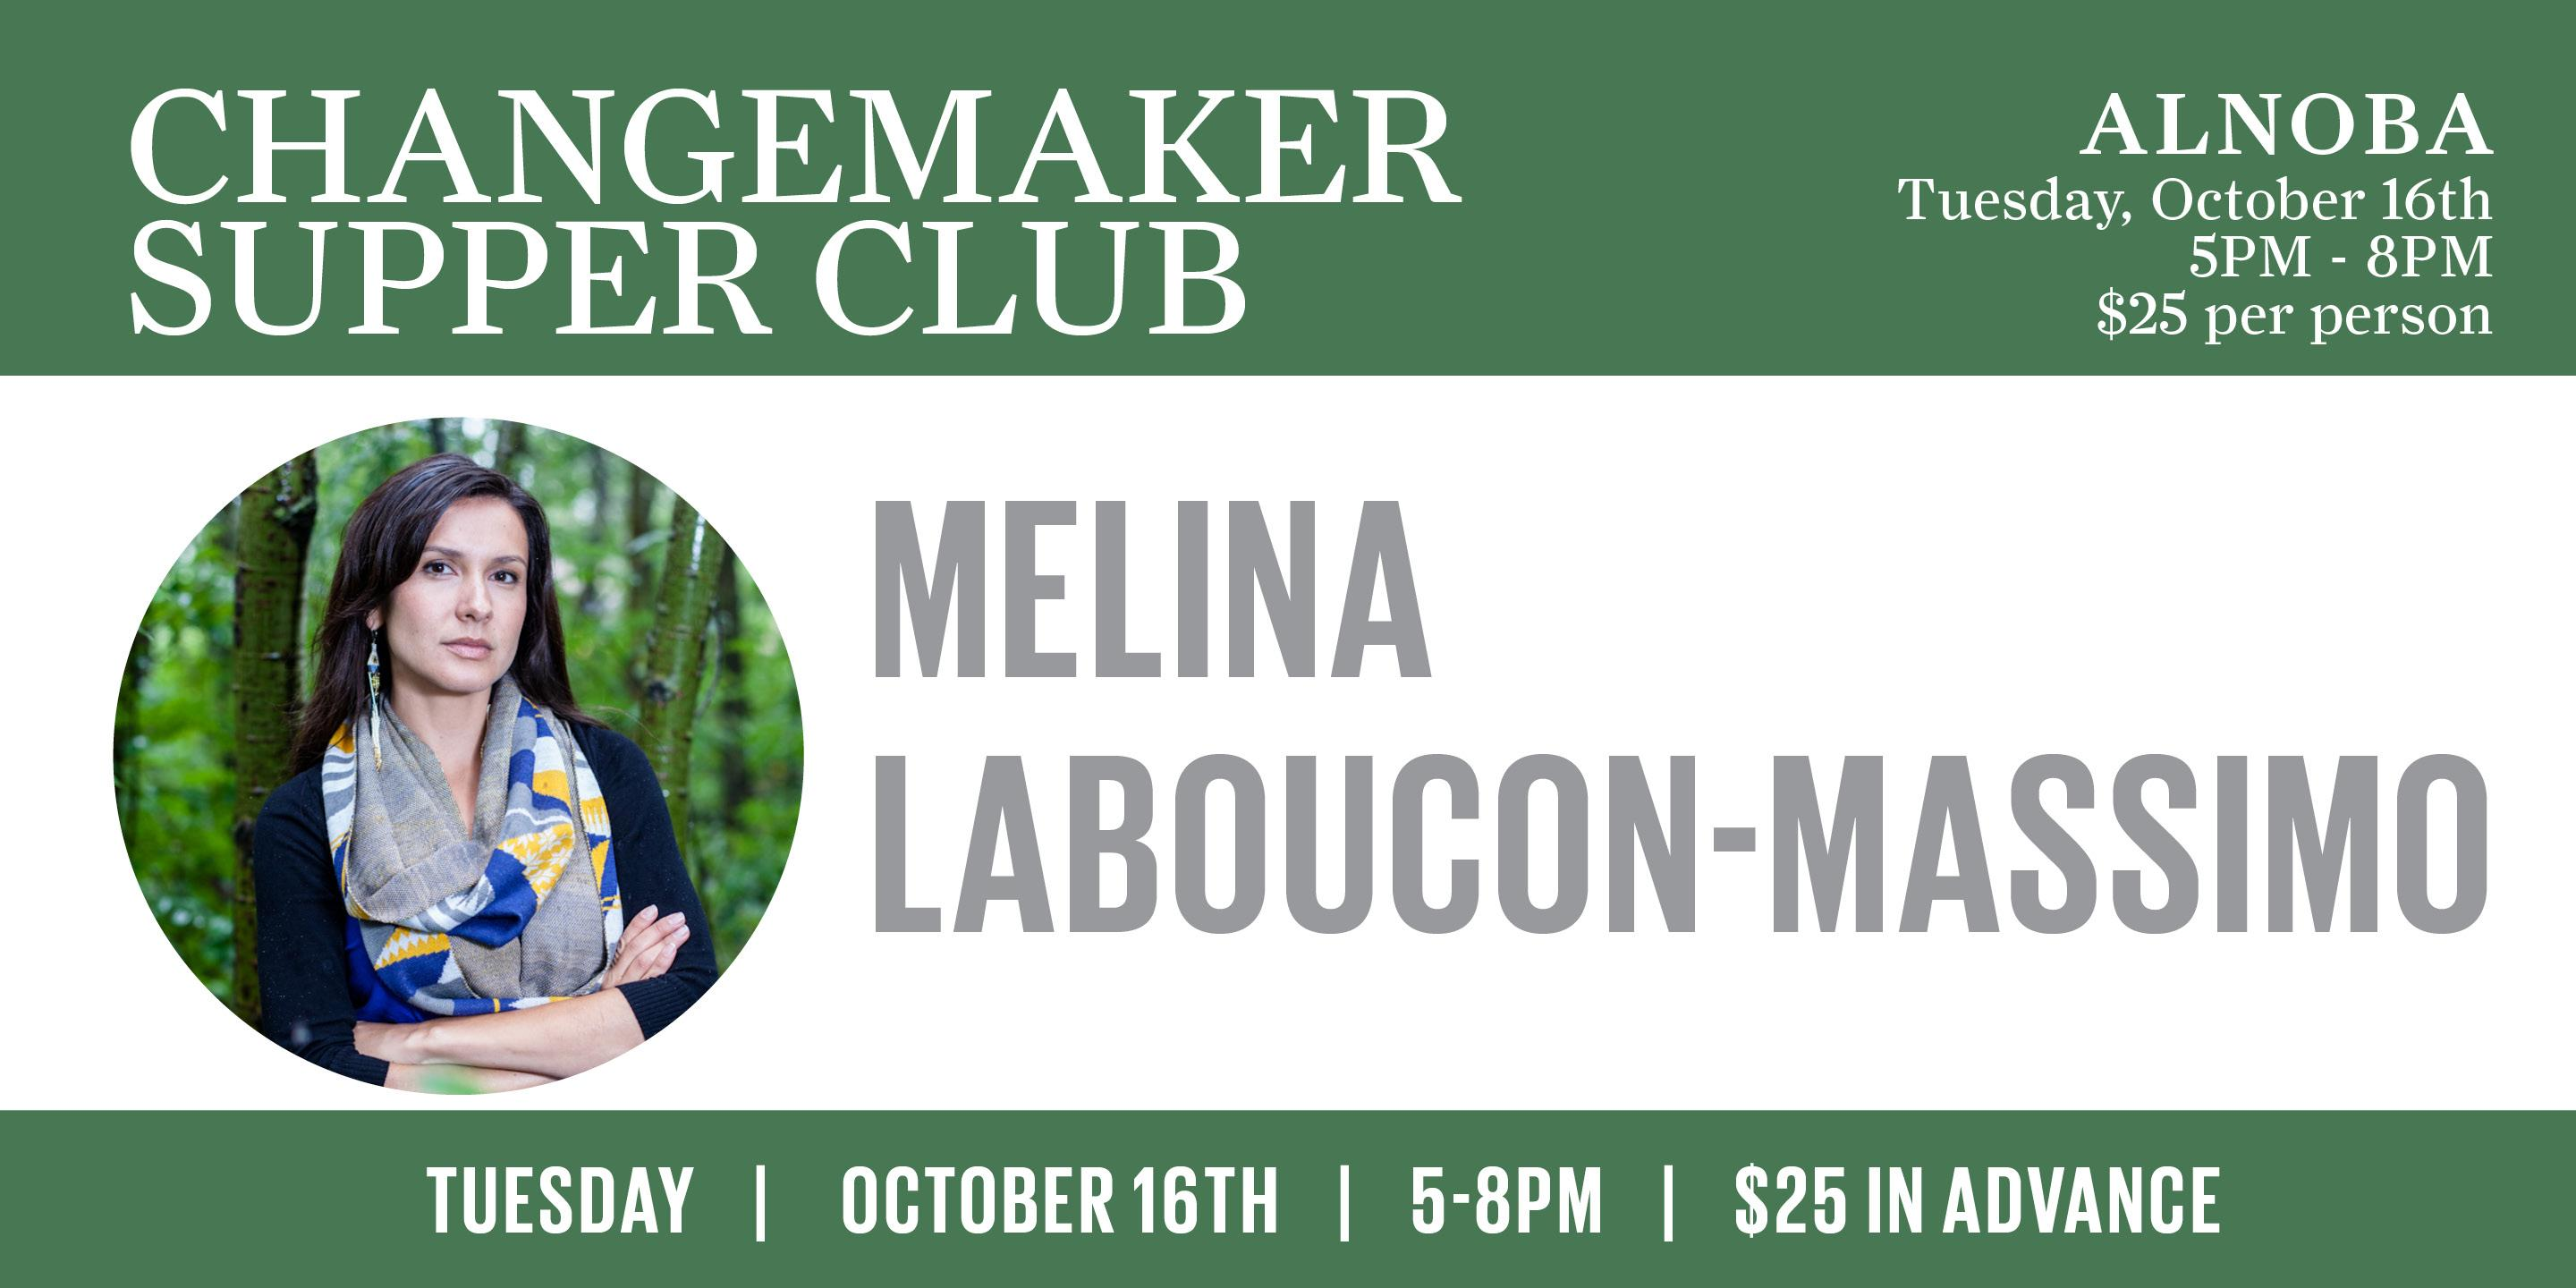 Change Maker Supper Club with Melina Laboucon-Massimo